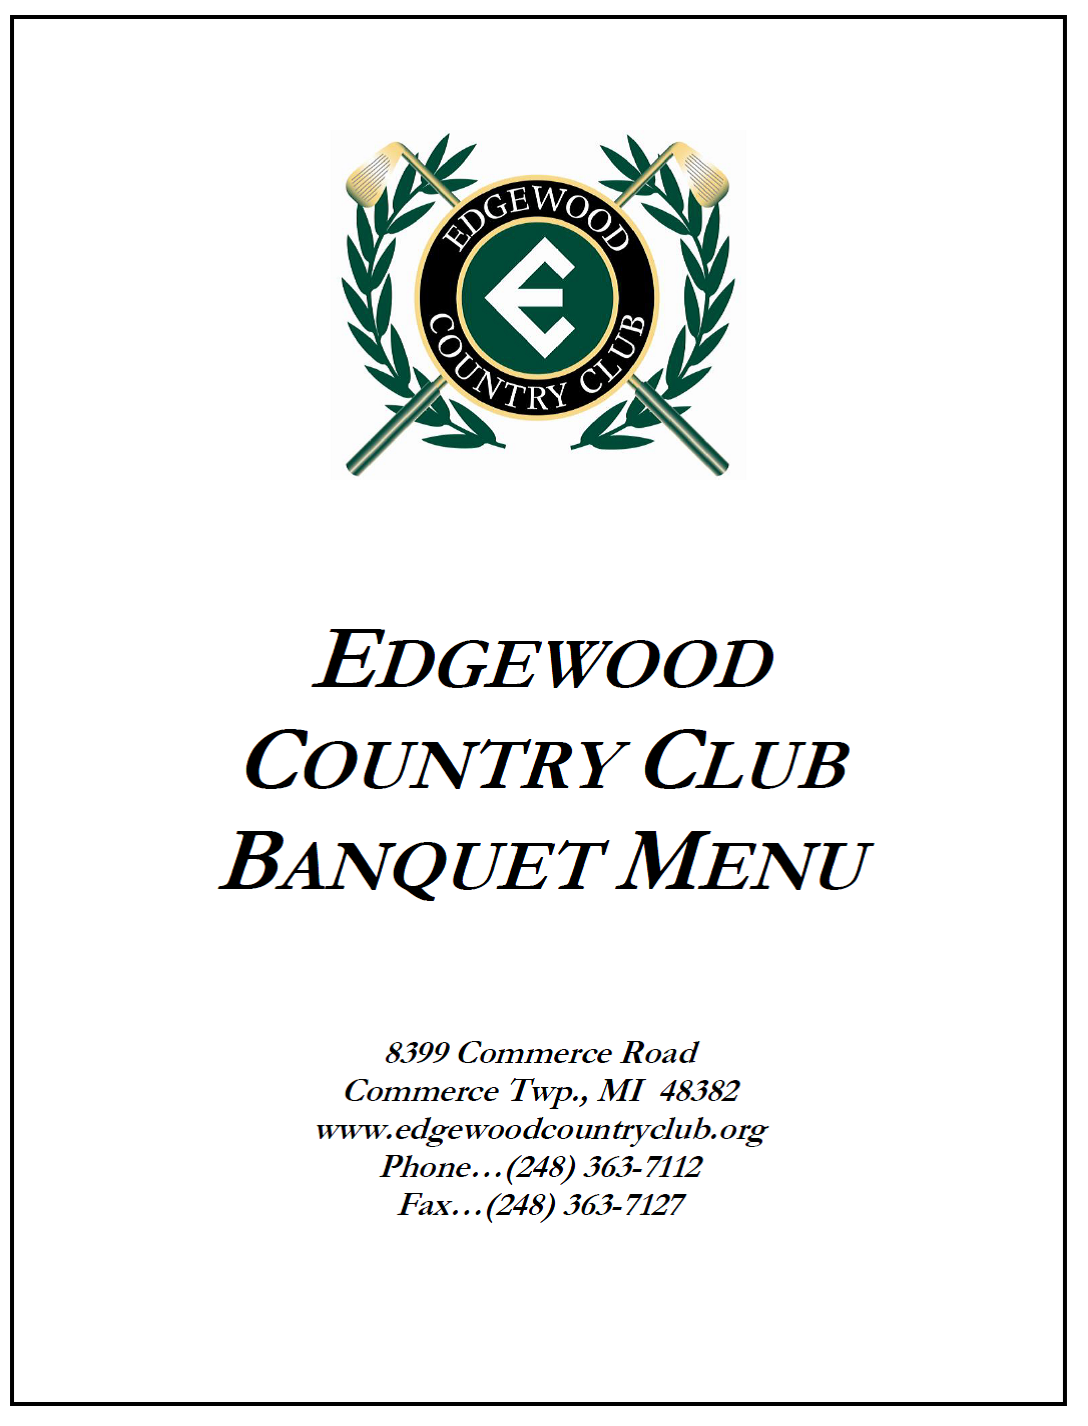 Edgewood Country Club View Library Document: Sample Menus